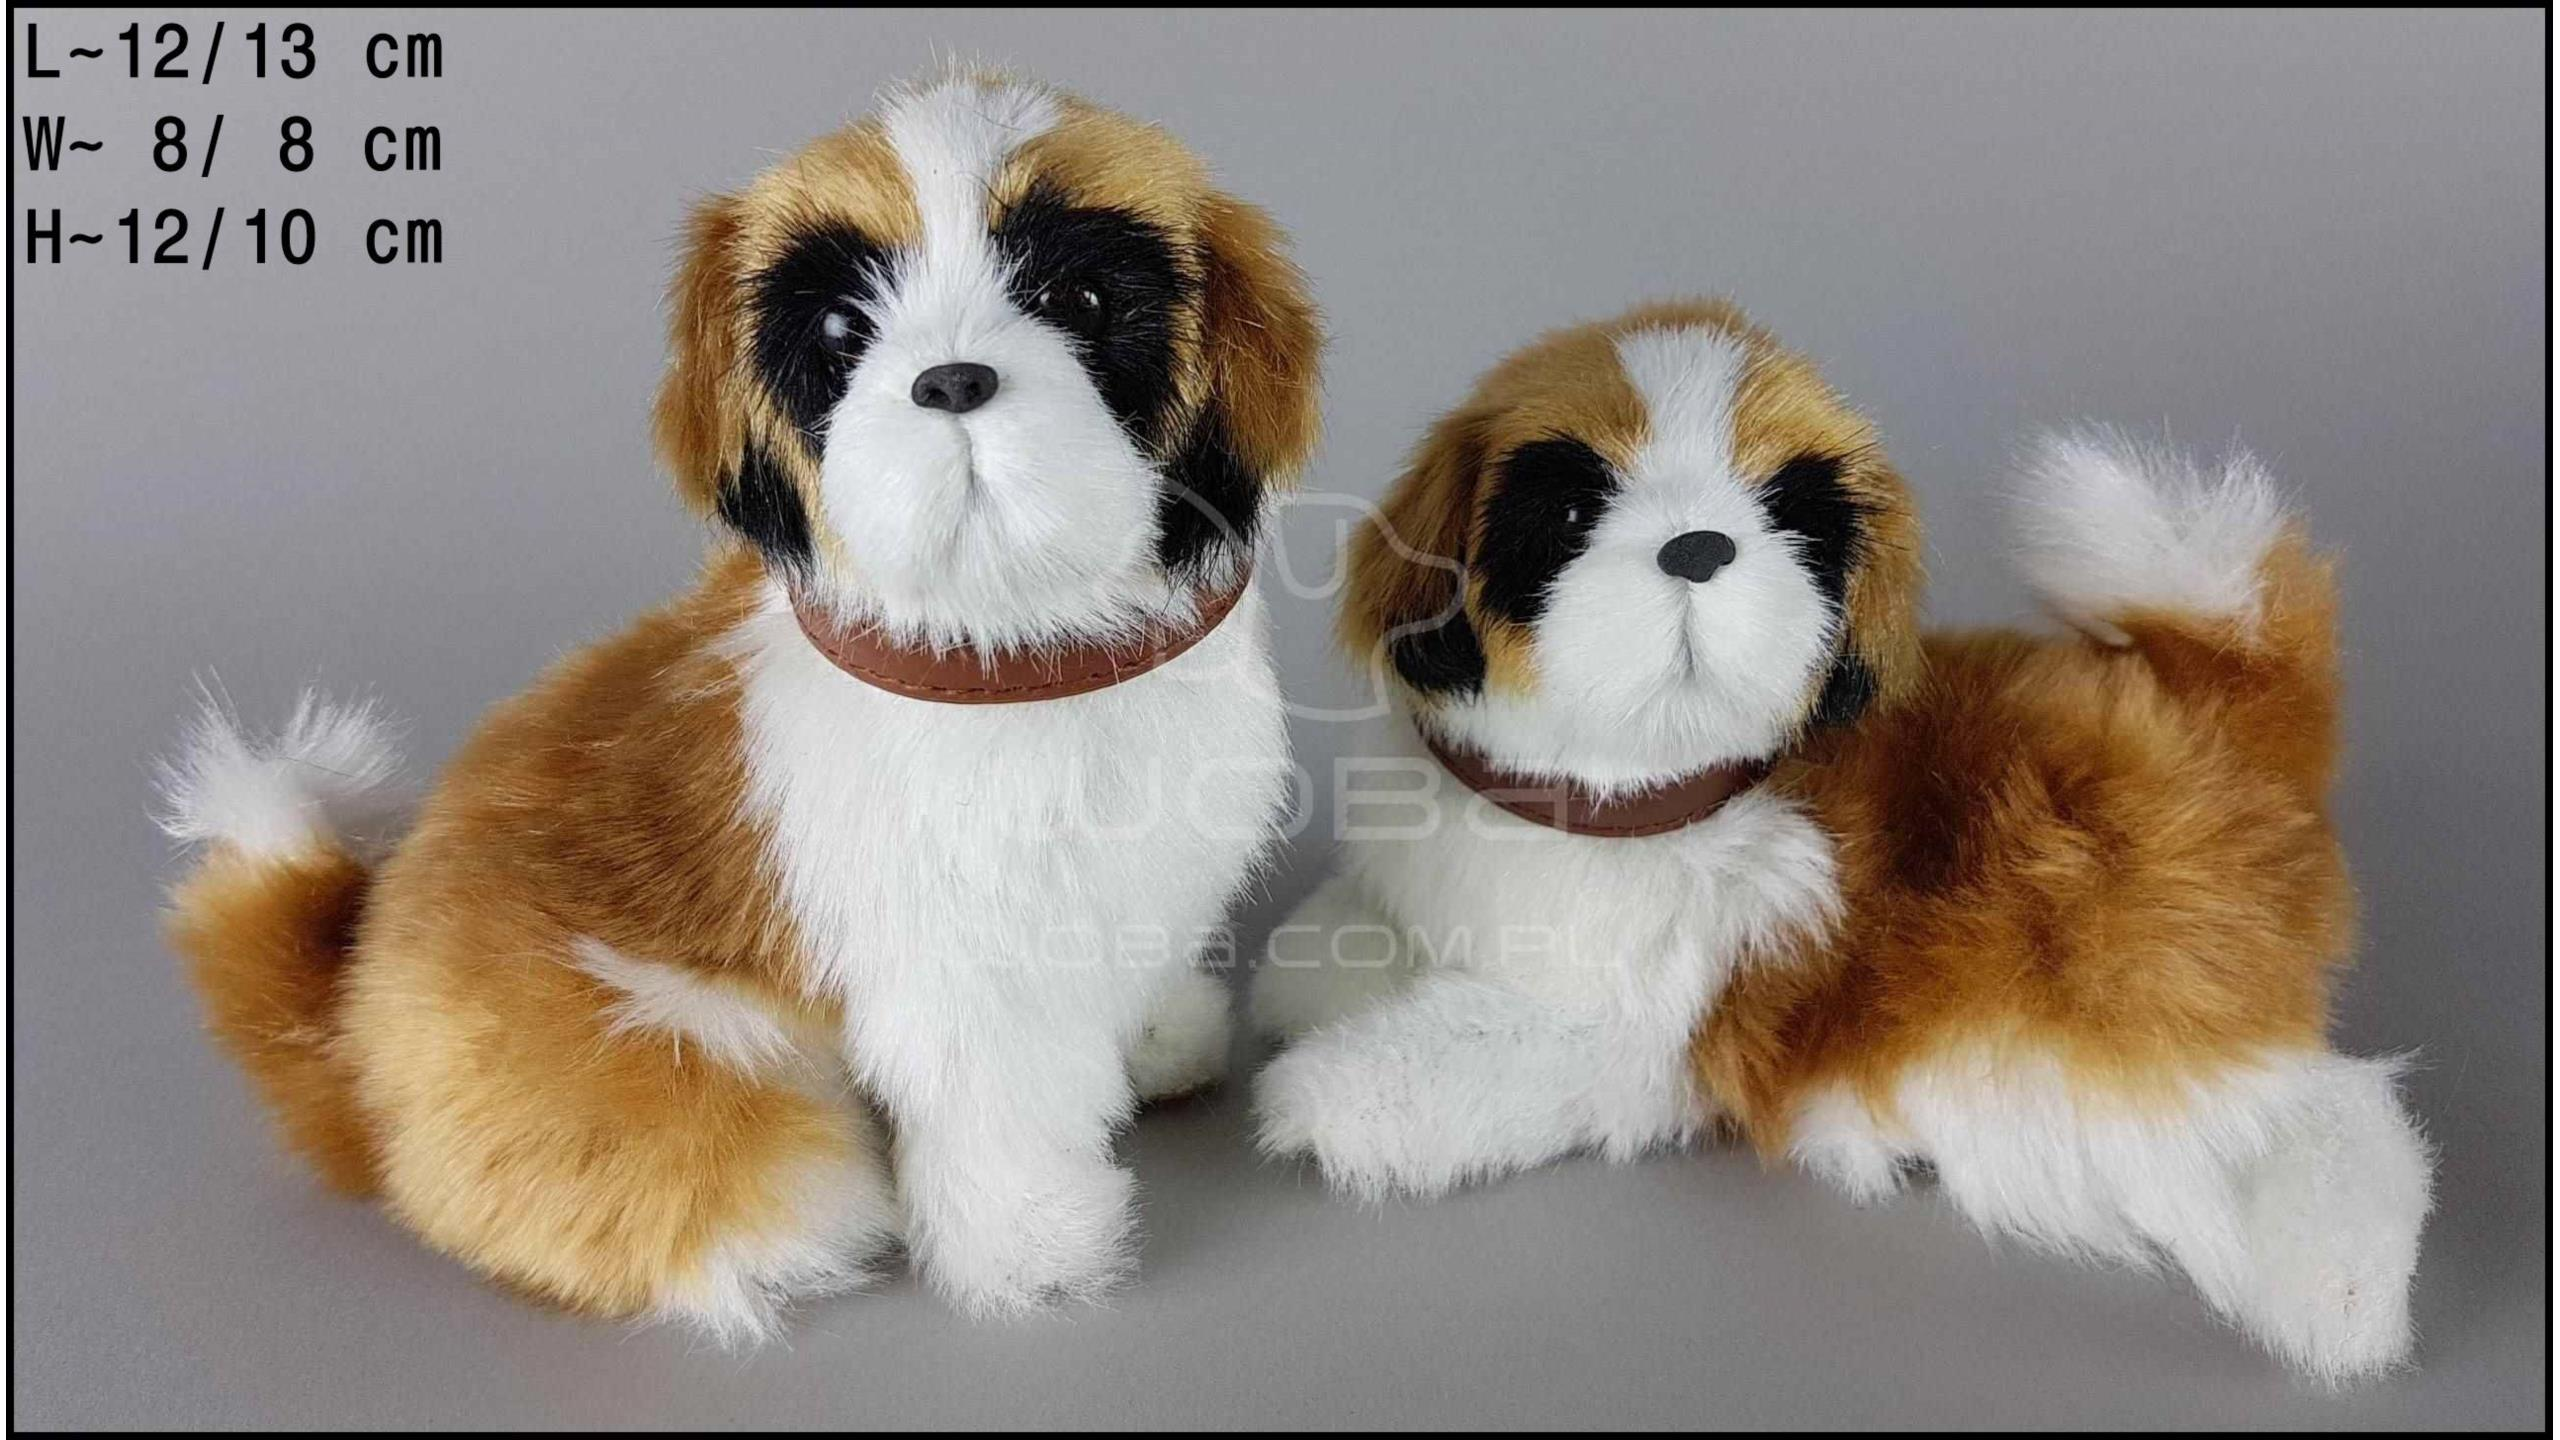 St. Bernard barking (2 pcs in a box)